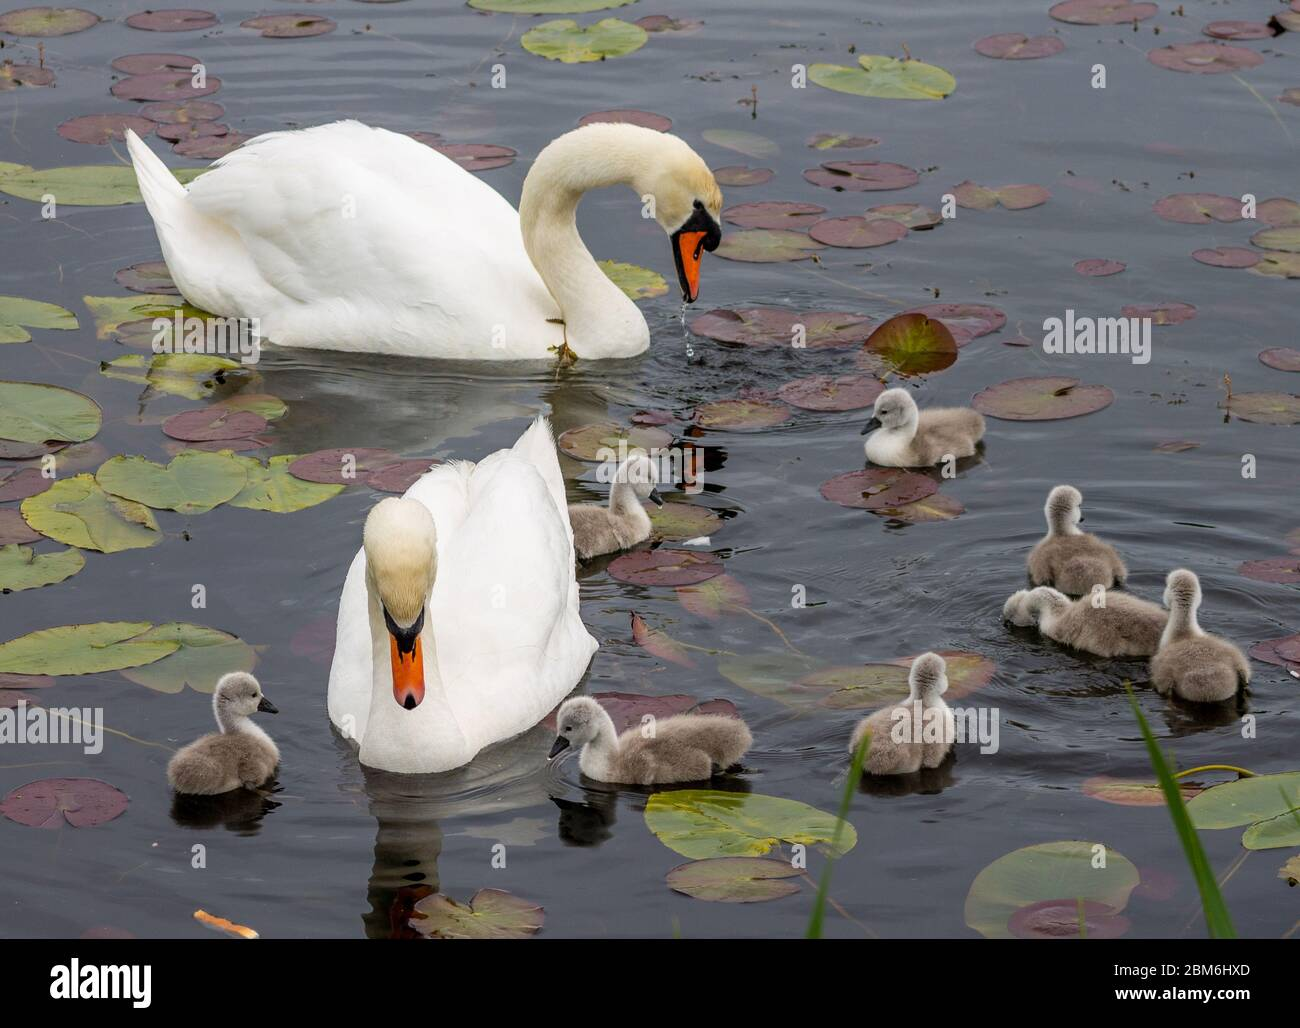 union-hall-west-cork-ireland-07th-may-2020-after-days-of-driving-rain-and-cold-temperatures-this-family-of-swans-with-cygnets-hatched-yesterday-took-advantage-of-the-sunshine-with-temperatures-up-to-16-deg-with-a-warm-breeze-to-get-out-onto-the-lake-credit-aphperspective-alamy-live-news-2BM6HXD.jpg